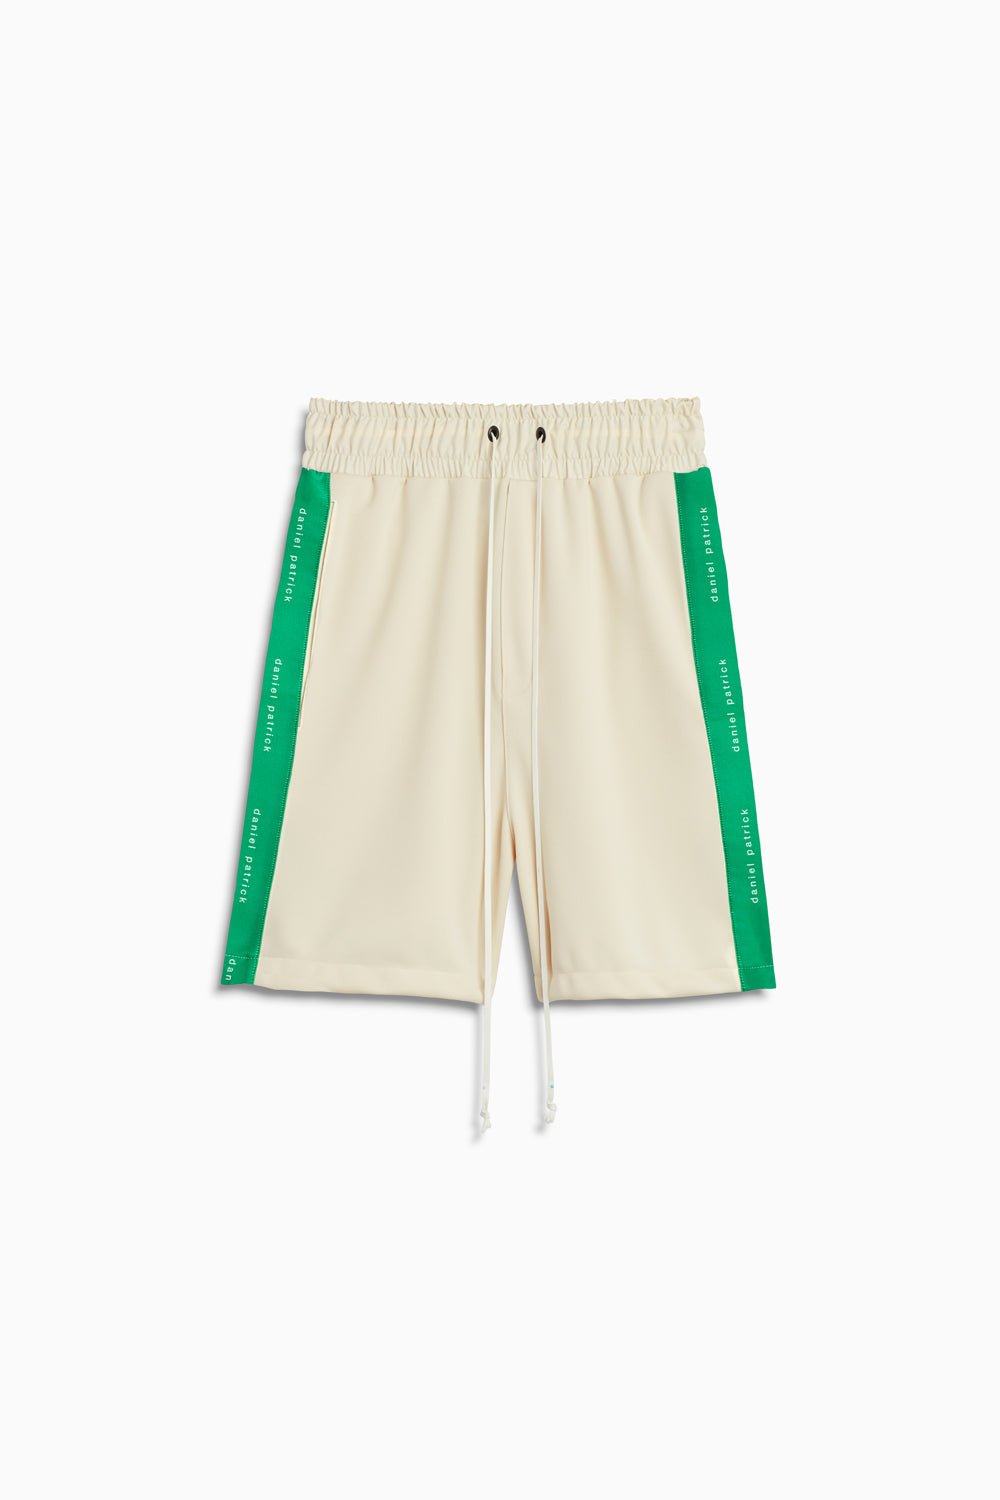 roaming gym shorts in ivory/green by daniel patrick